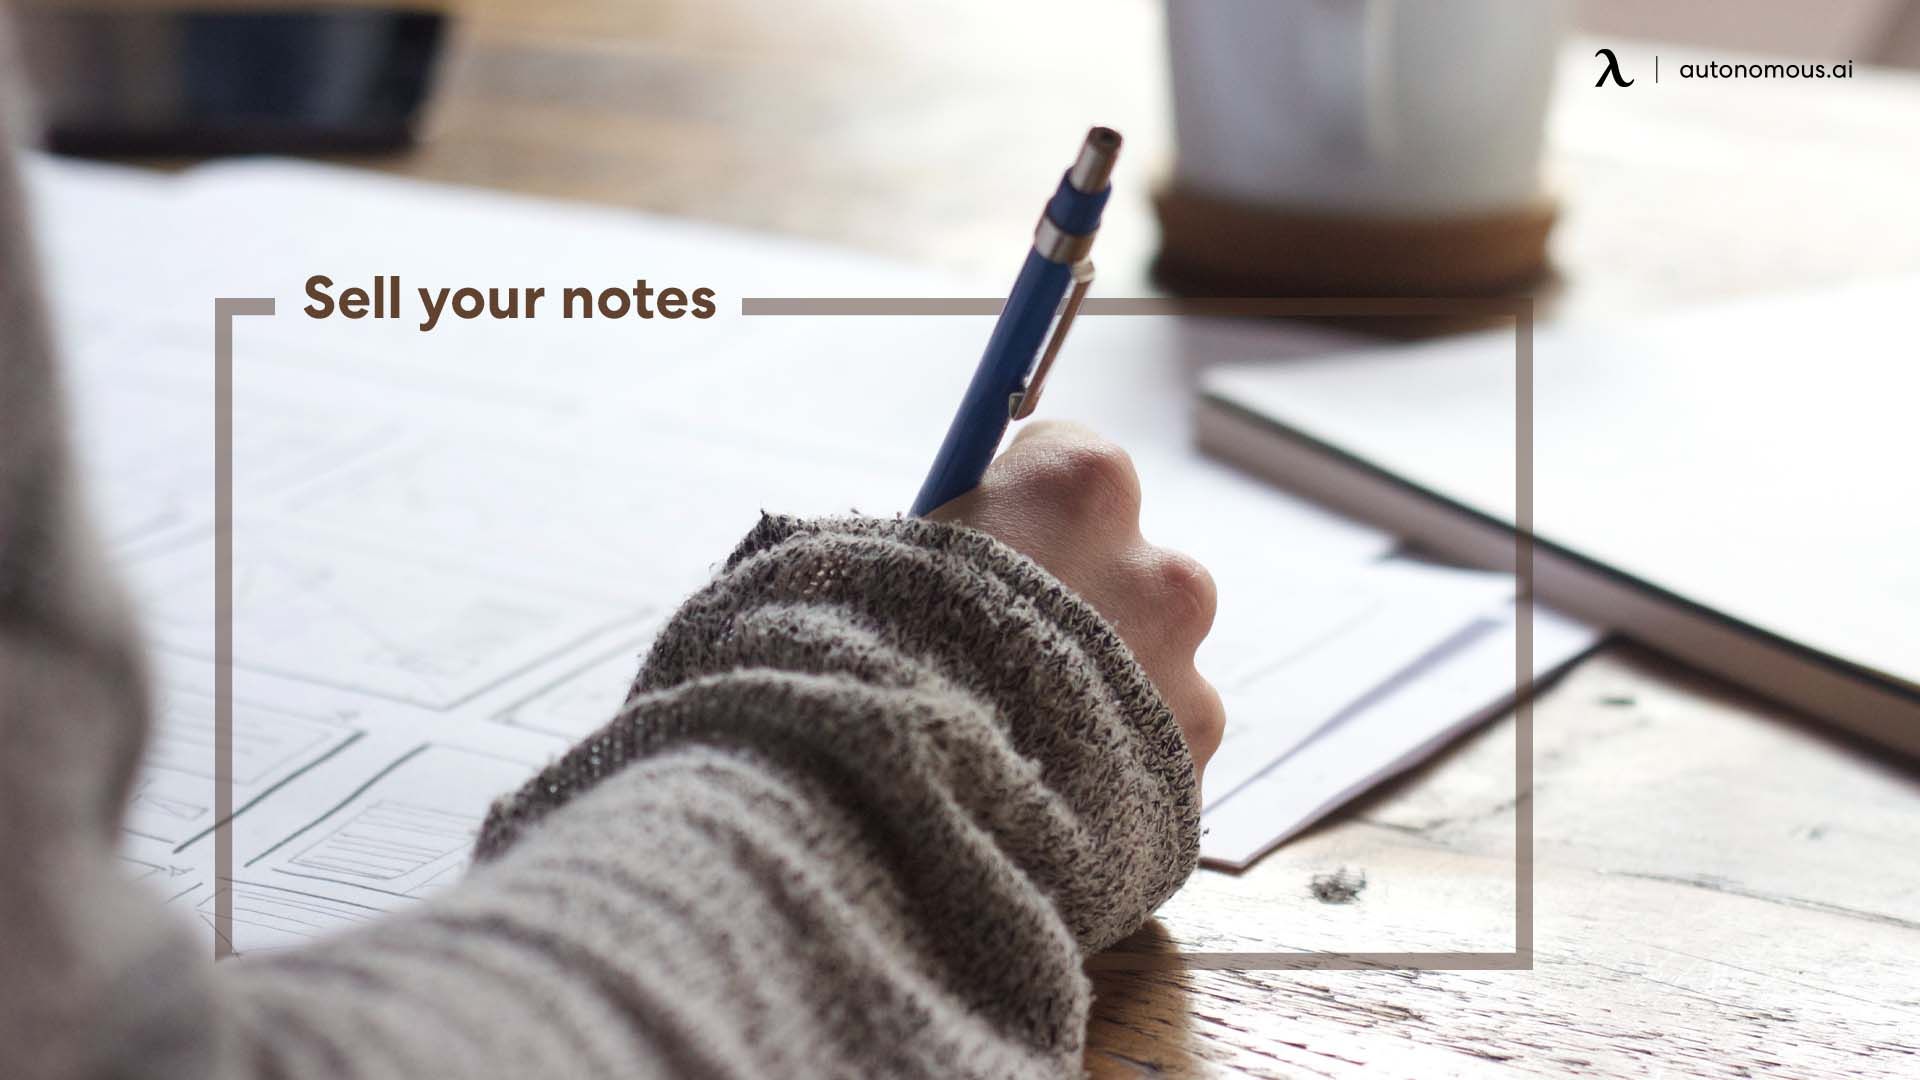 Sell your notes